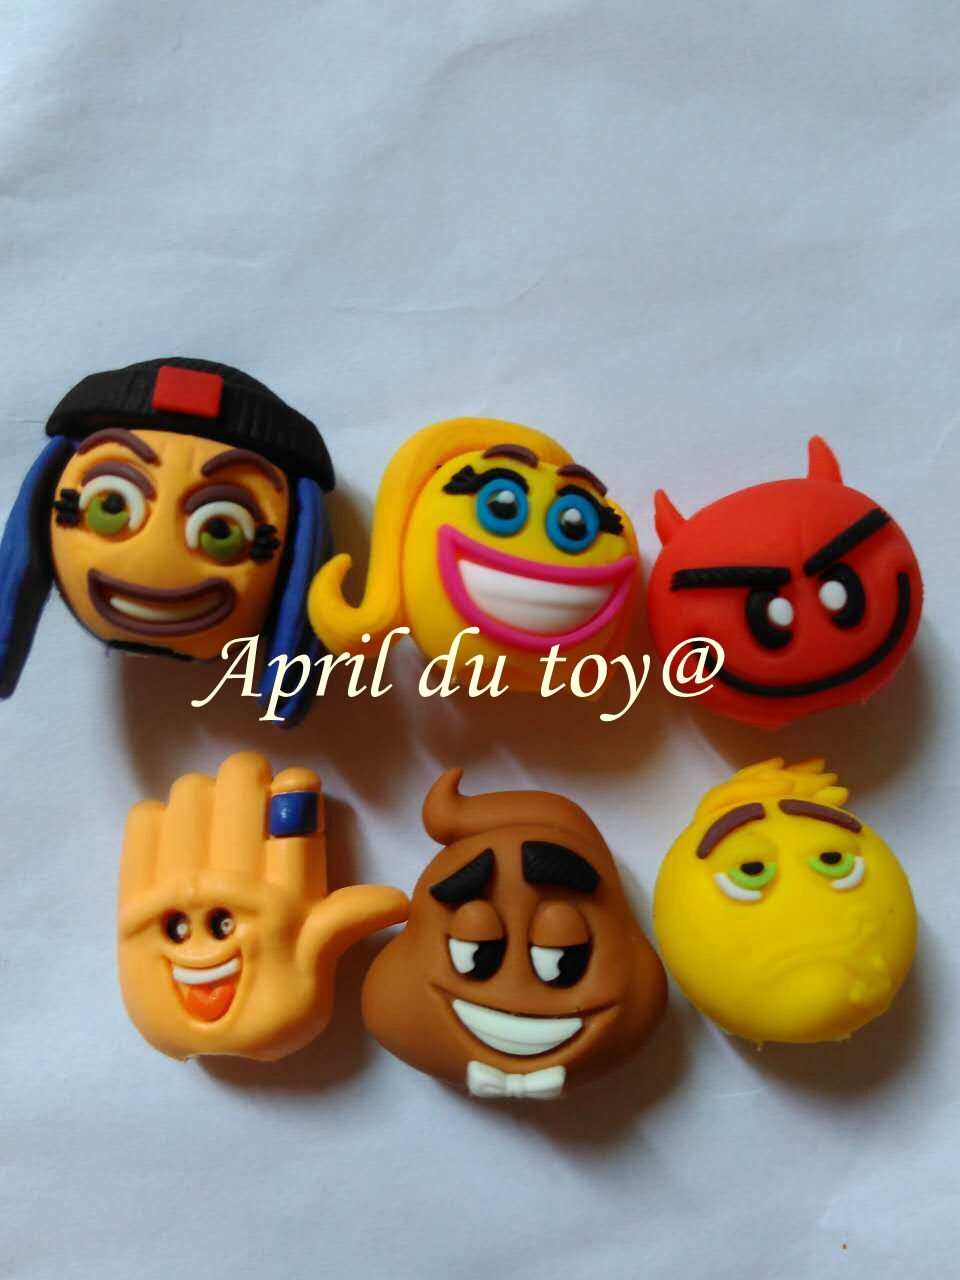 6pcs lot Mini Size emoji Pencil Topper Movie Roles Action Figures Model PVC Toys Gifts For